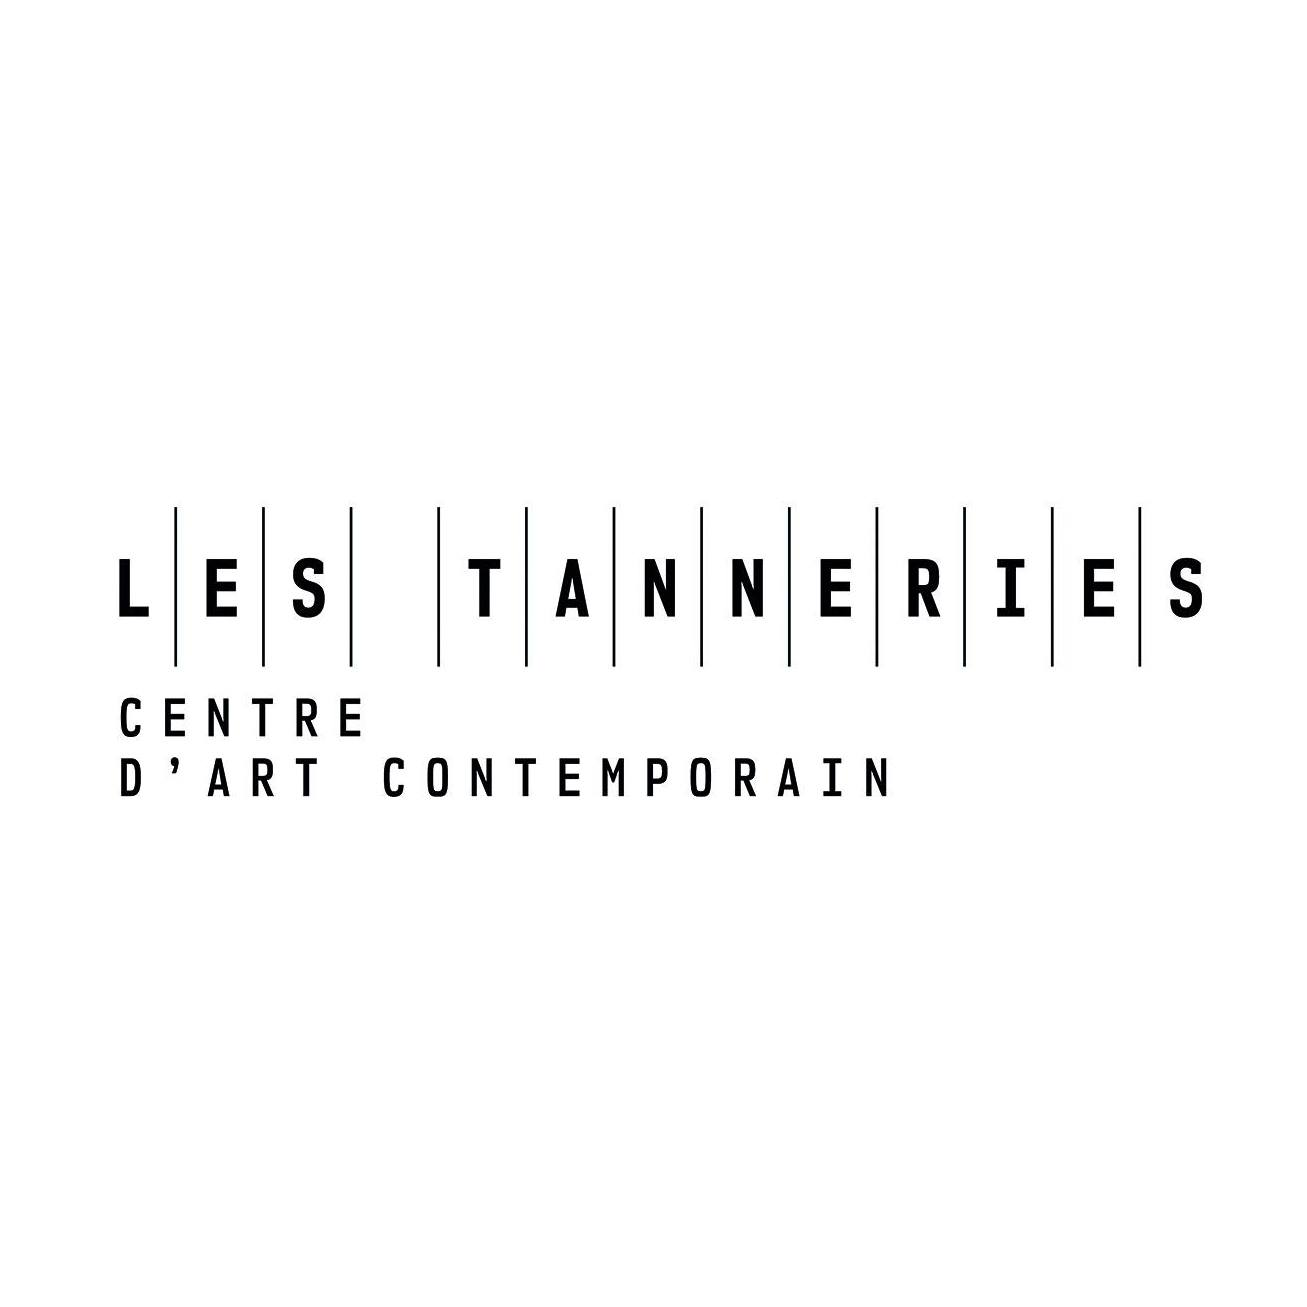 Les Tanneries - Centre d'art contemporain